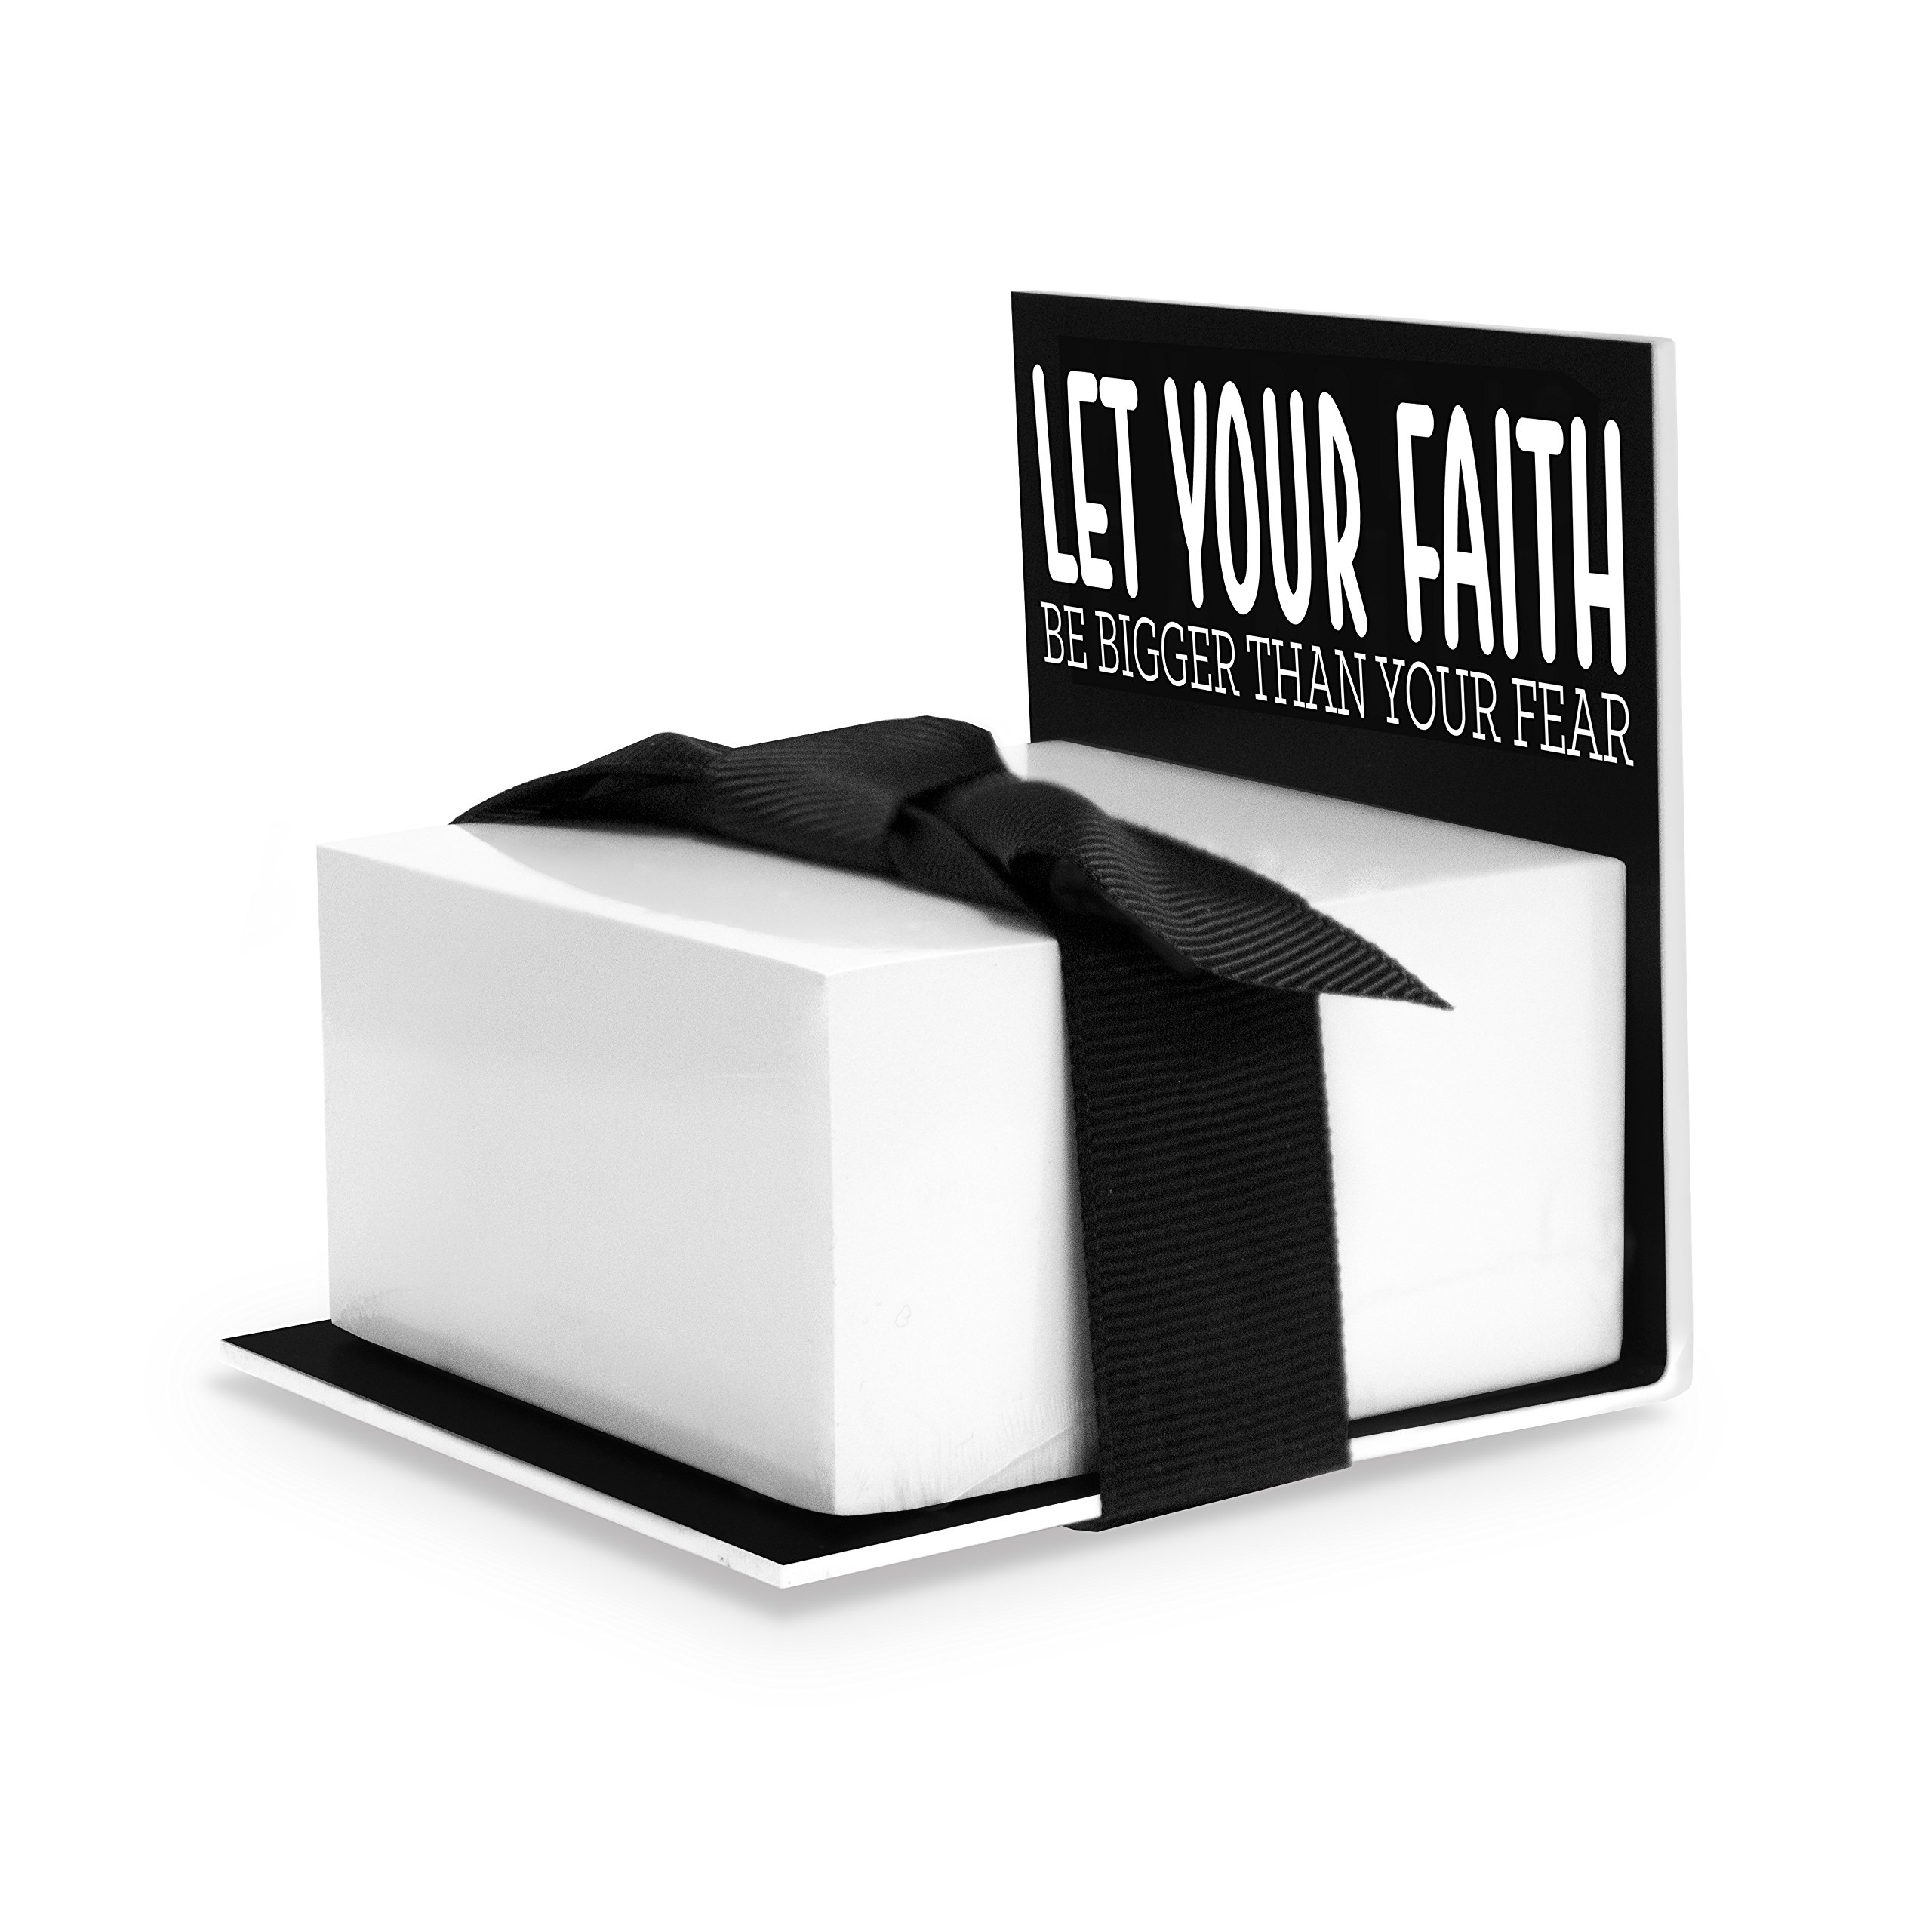 Sticky Notes Holder, Let Your Faith Be Bigger Than Your Fear, Black by Wellspring